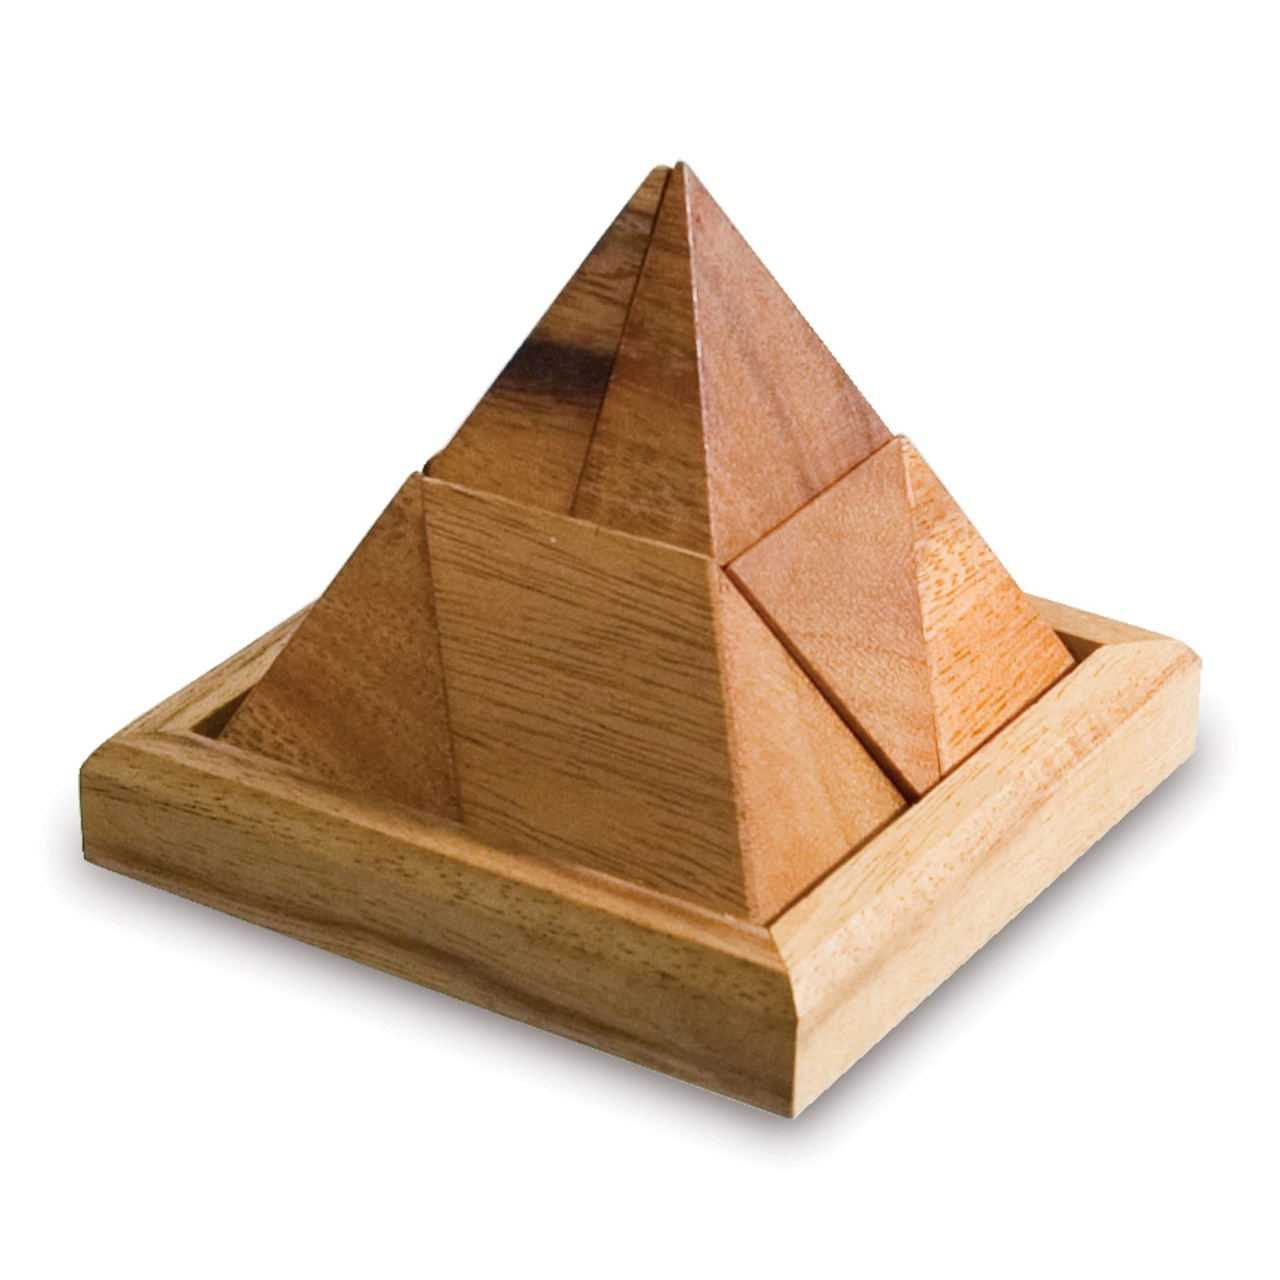 Maxiaids Pyramid Puzzle Wooden Tactile Brainteaser